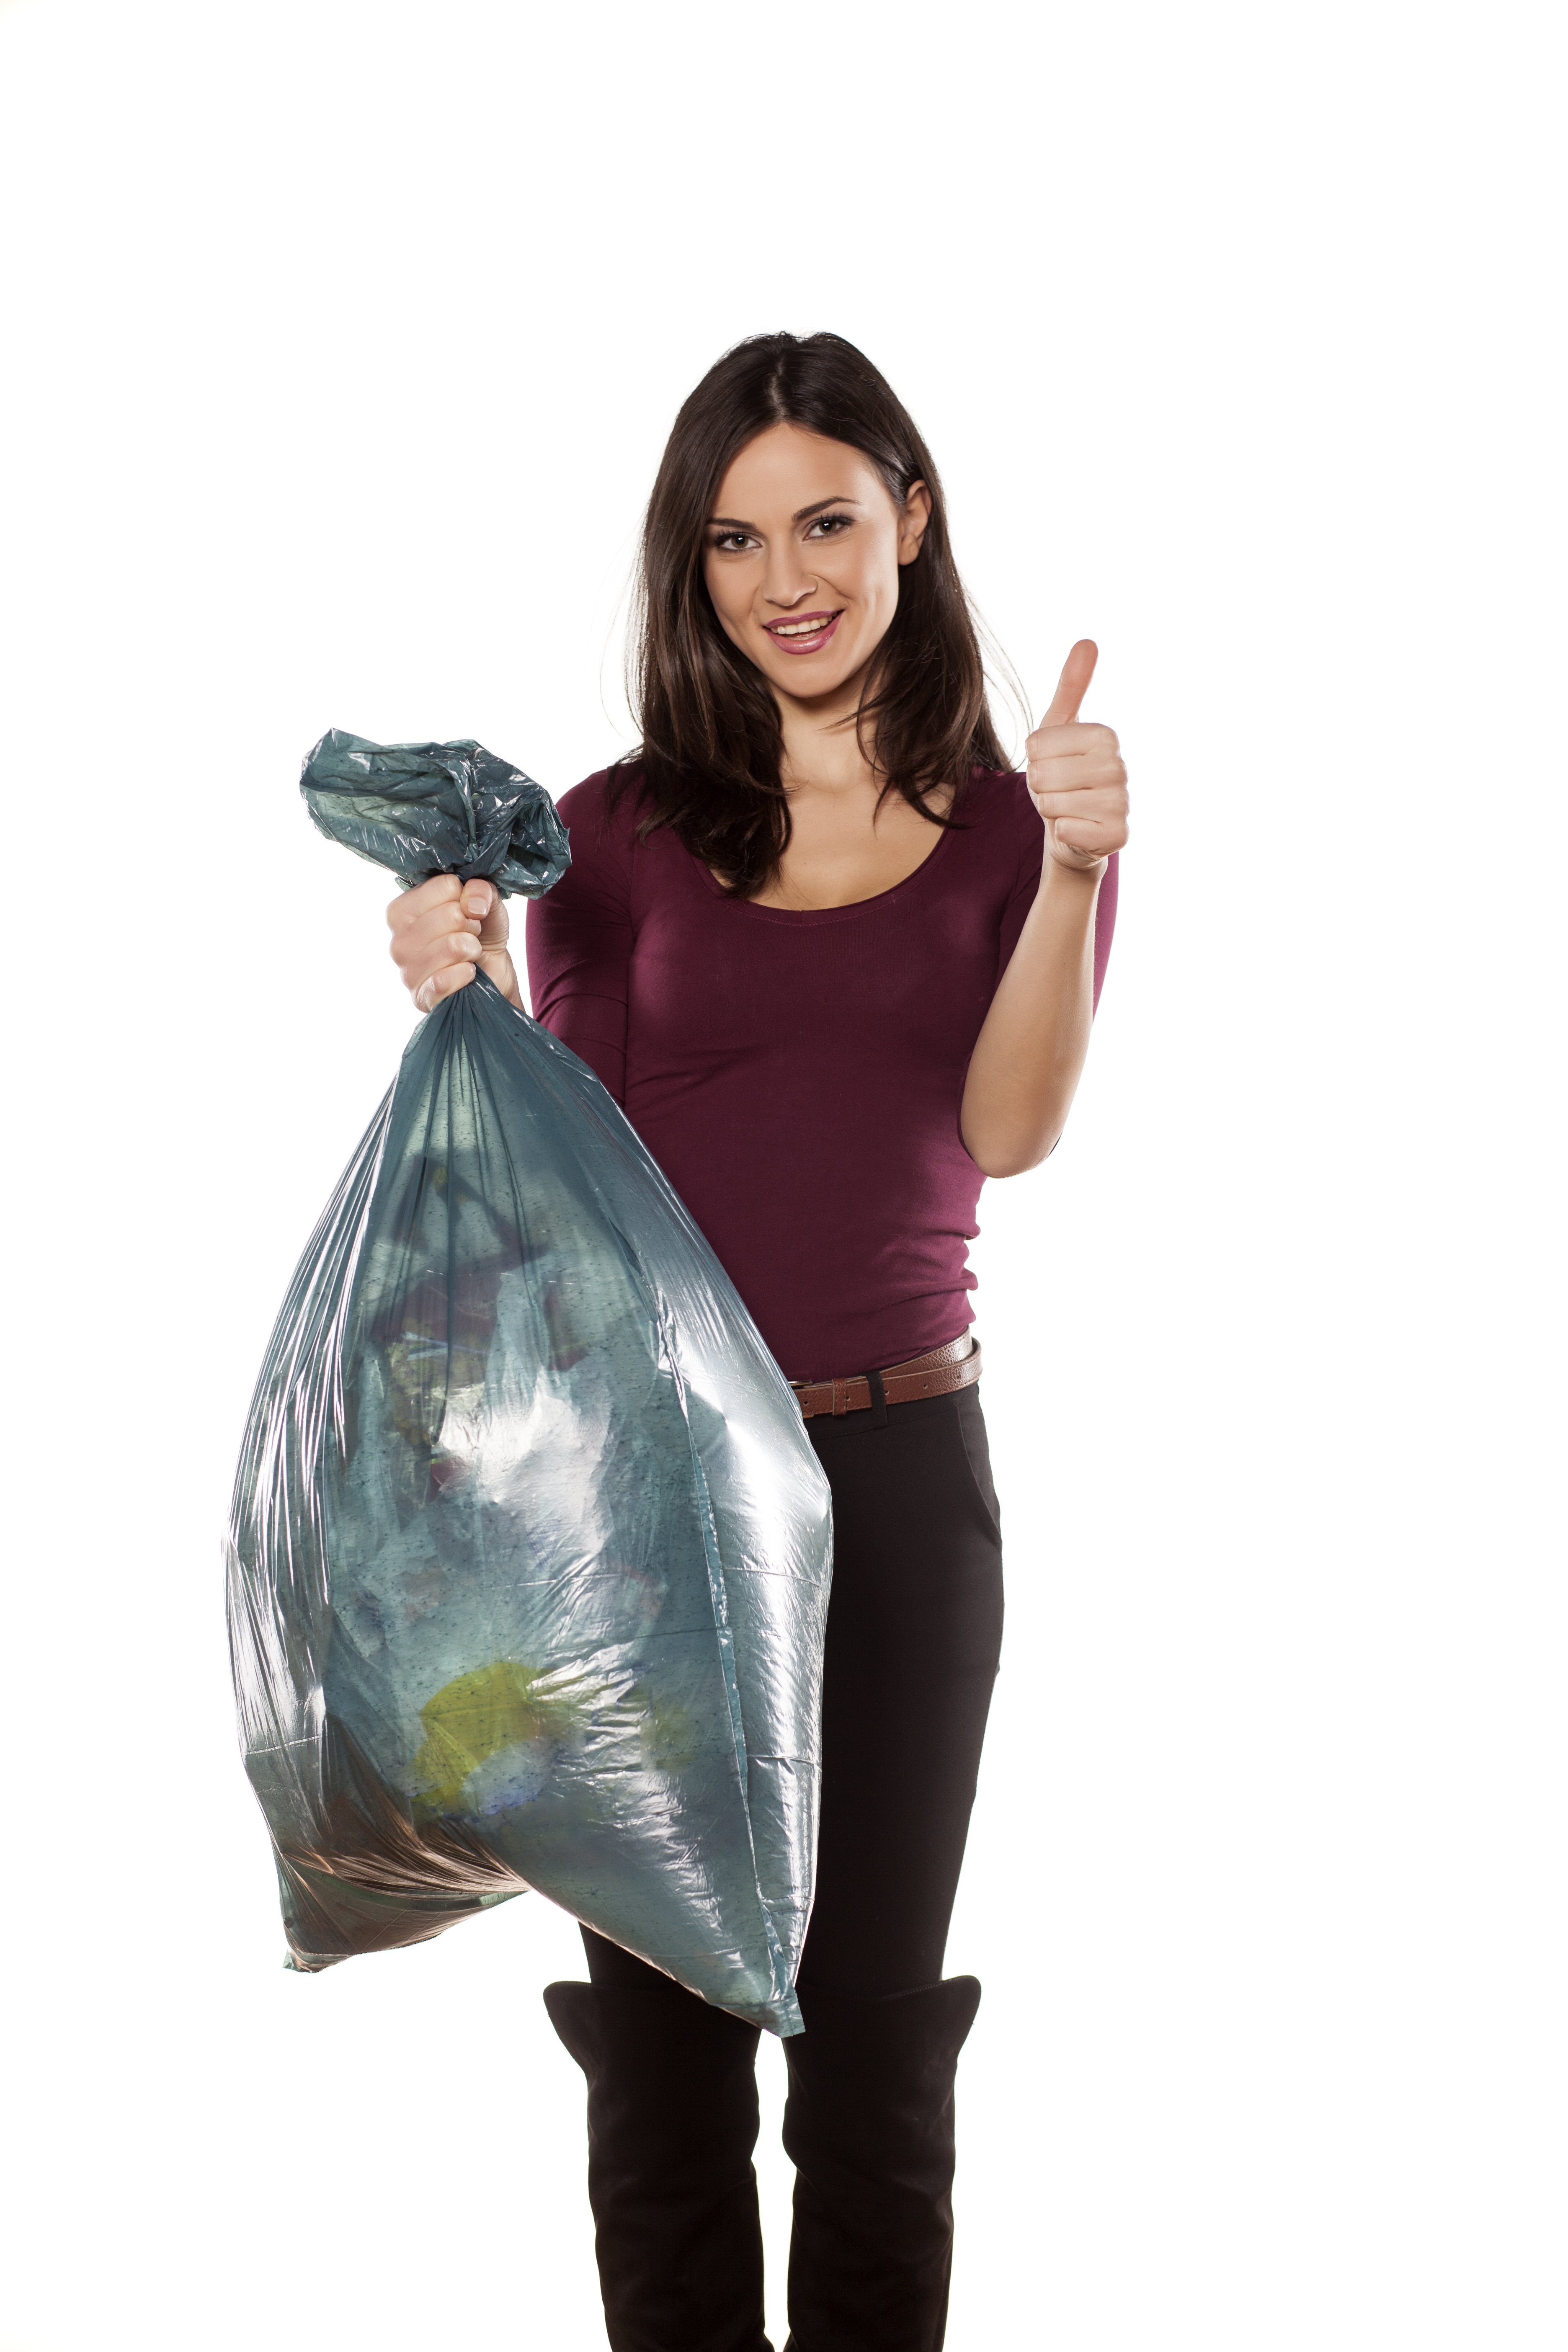 happy young woman holding garbage bag and showing thumbs up